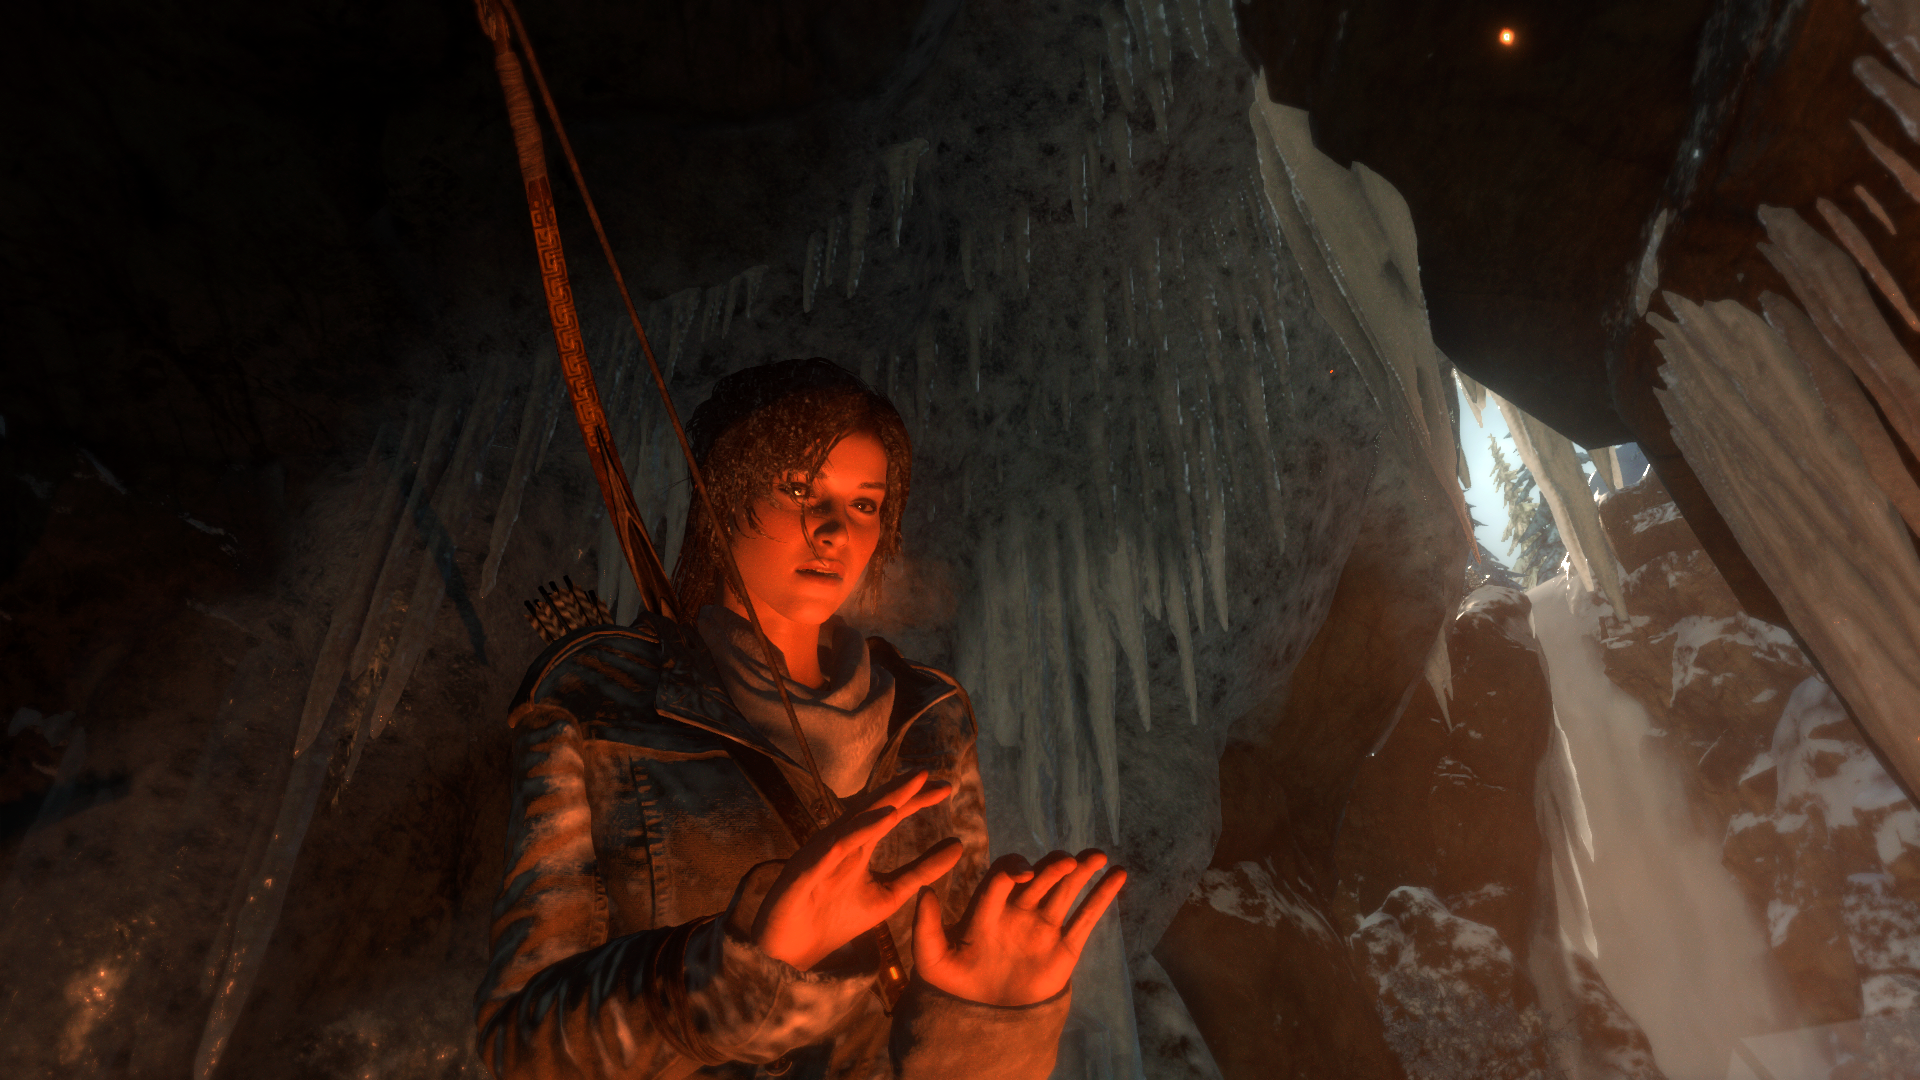 Stay frosty, Lara